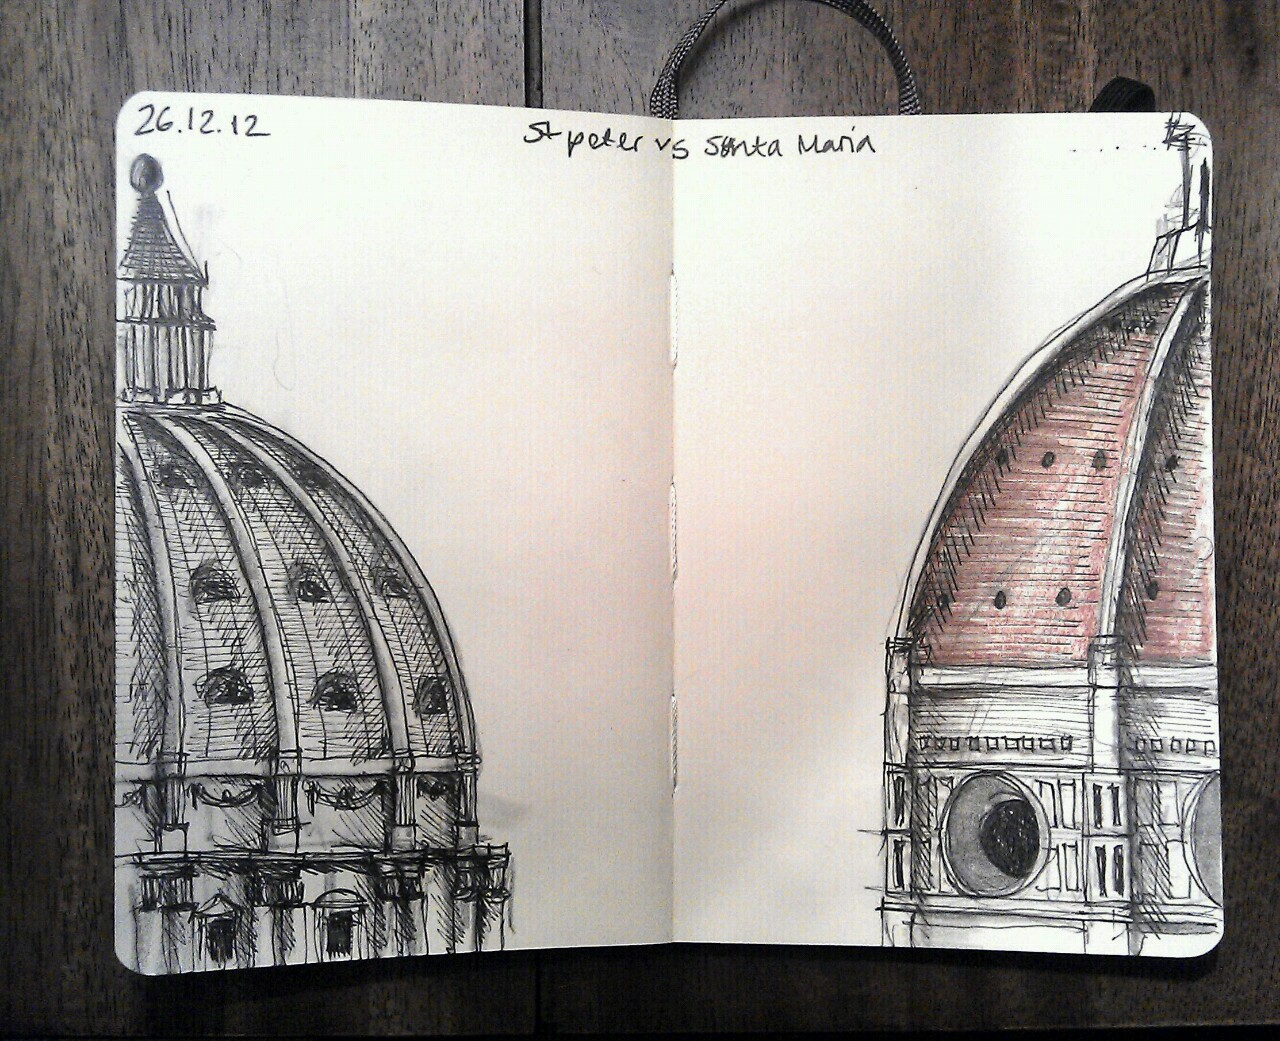 365 drawings later … day 330 … st peter vs santa maria